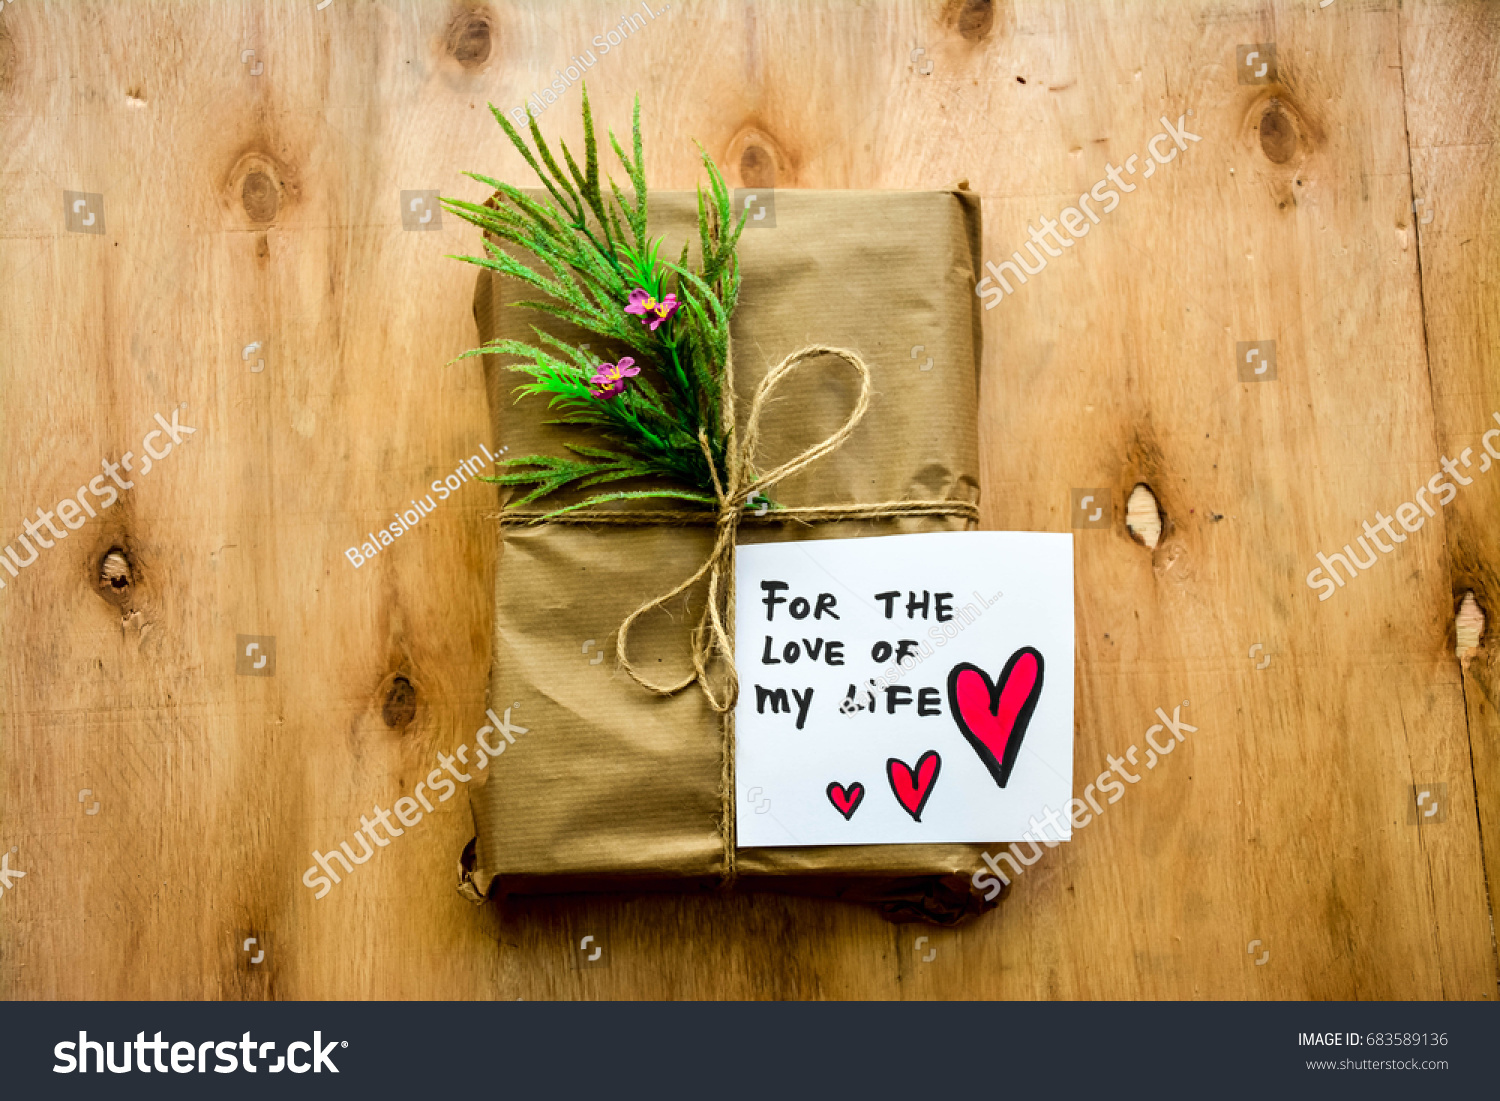 Rustic gift paper craft love my stock photo 683589136 shutterstock rustic gift in paper craft and for the love of my life text on a note jeuxipadfo Images